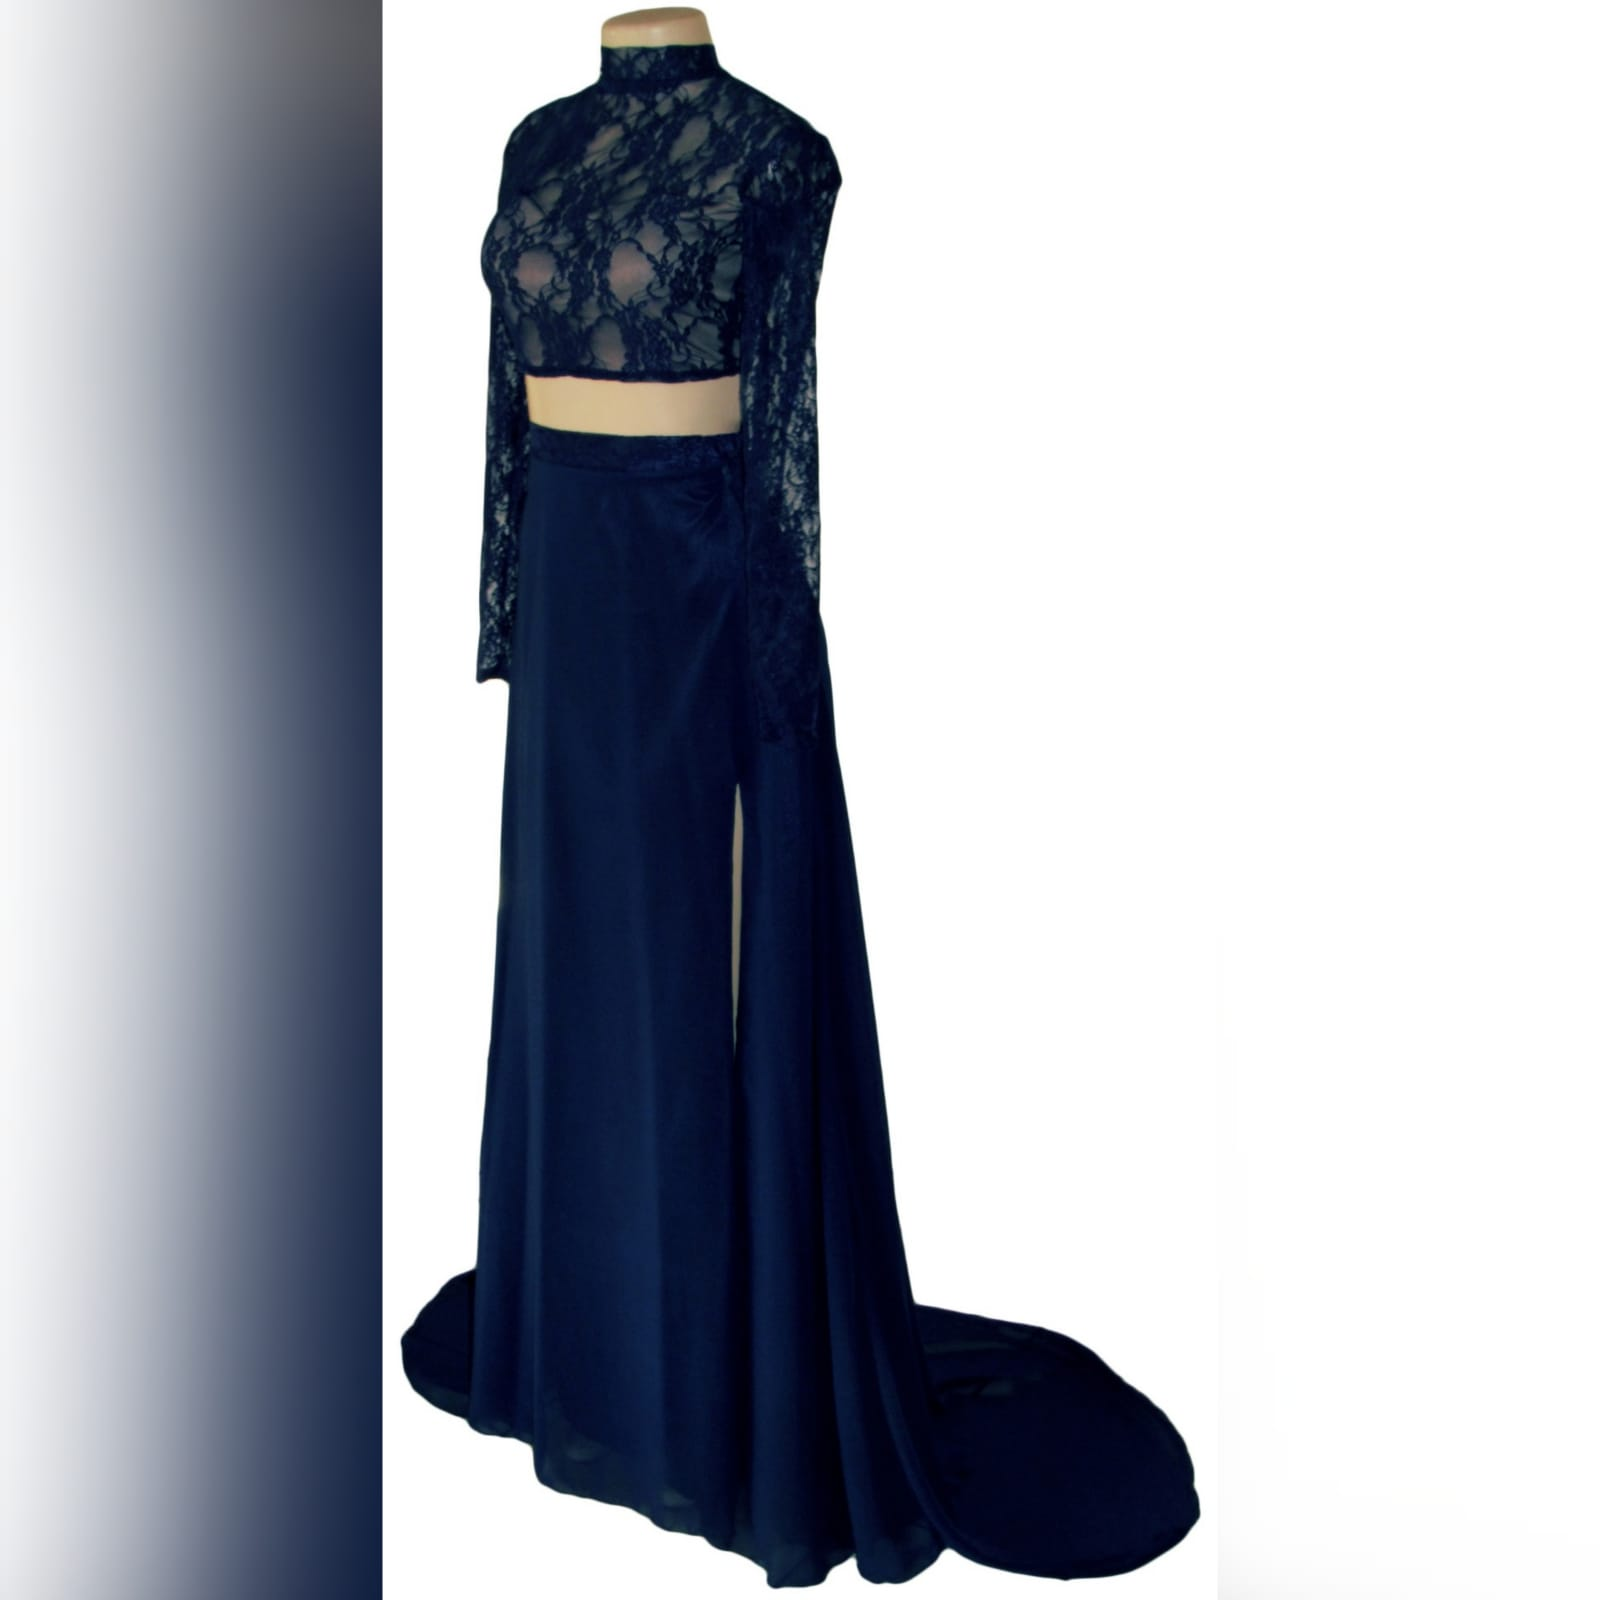 Navy blue 2 piece lace top matric dance dress 6 navy blue 2 piece lace top matric dance dress. Top with sheer long lace sleeves and open back flowy skirt with high slit and a train.